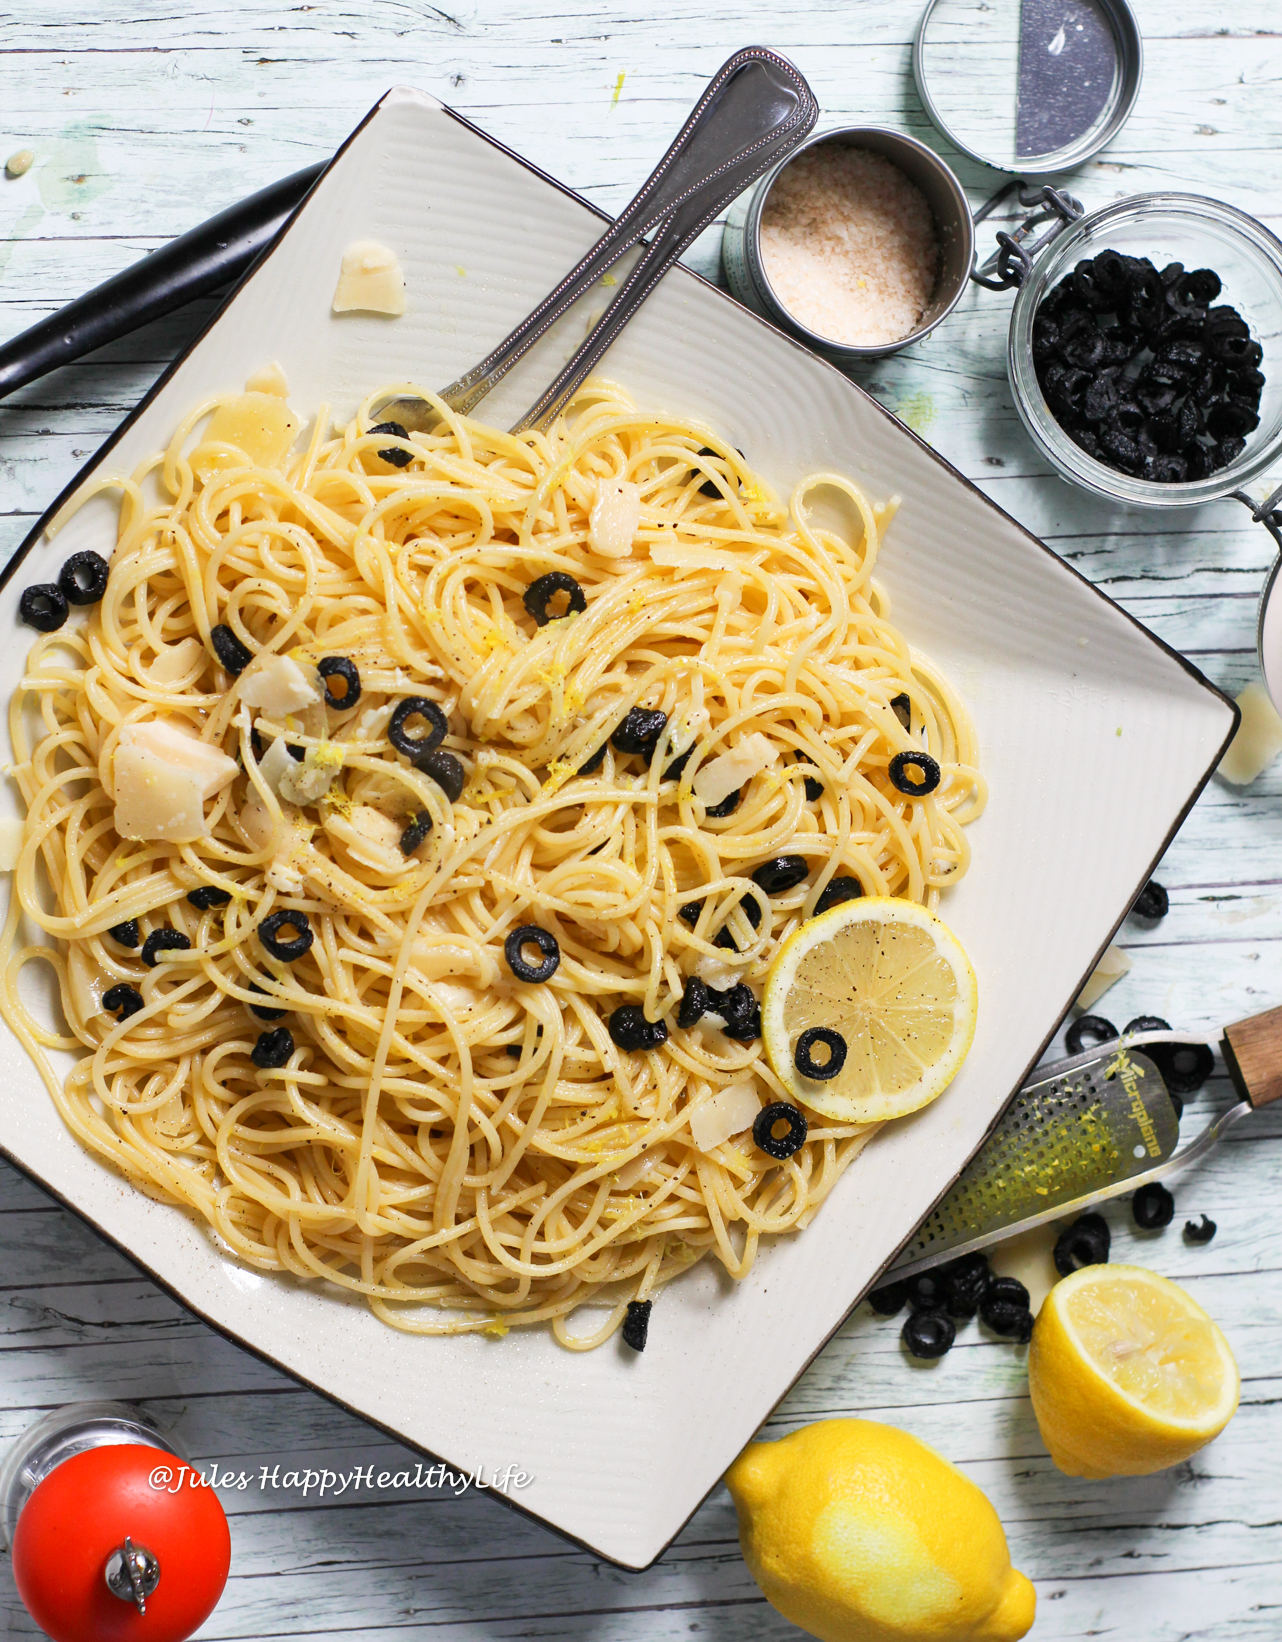 When you need a quick and still healthy recipe make Spaghetti with Lemon Sauce